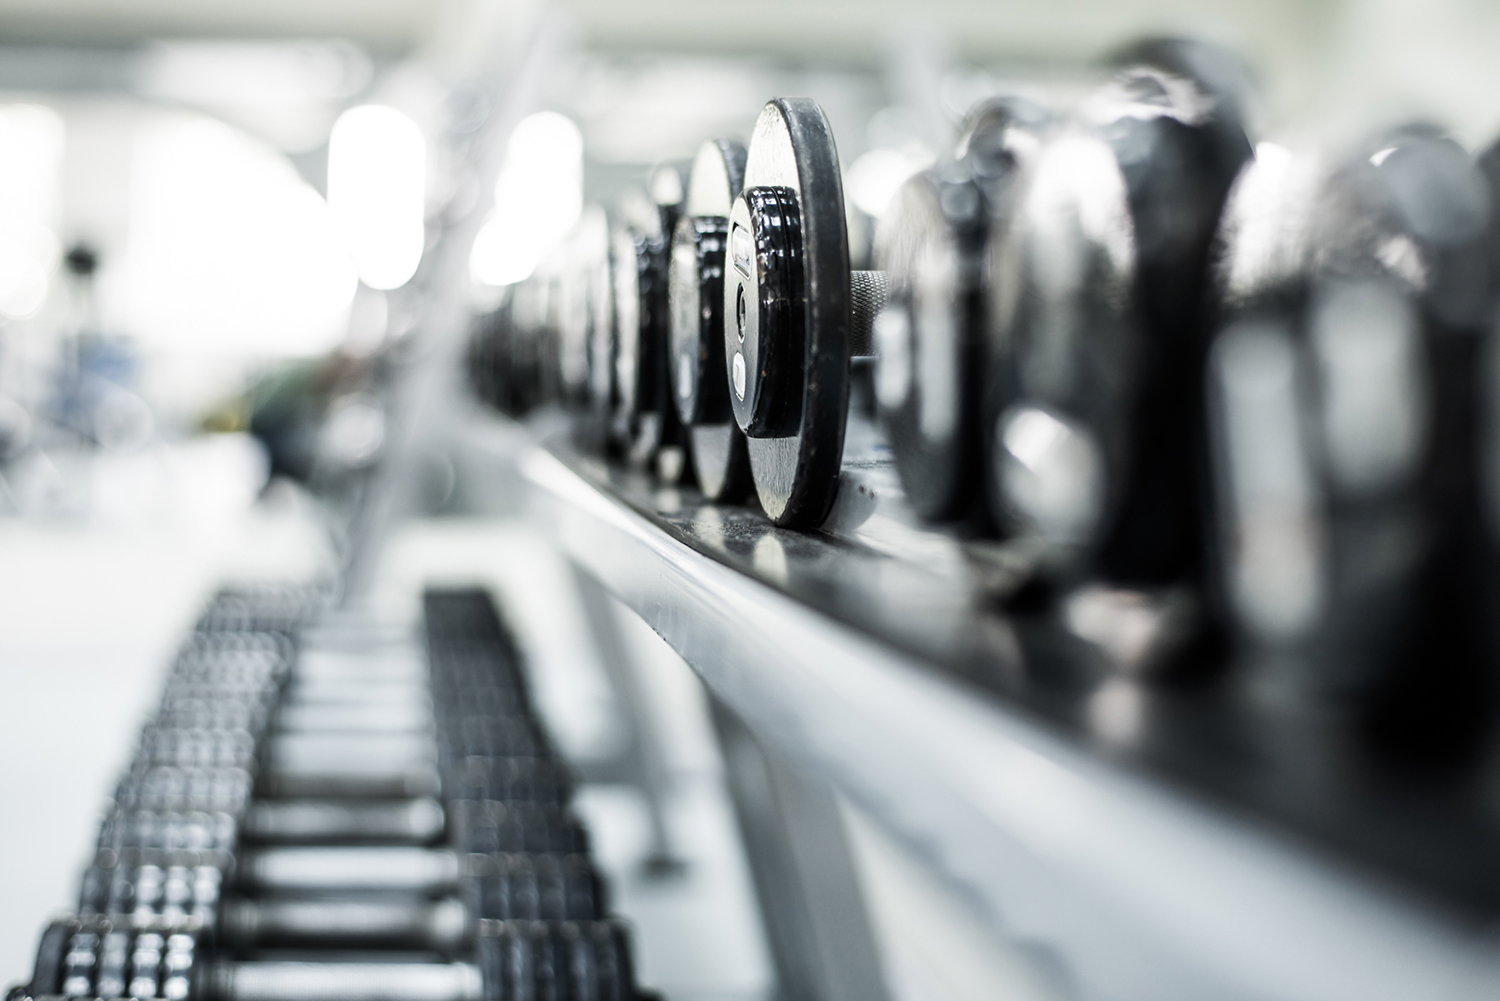 Why Your Local Gym Needs Security Cameras